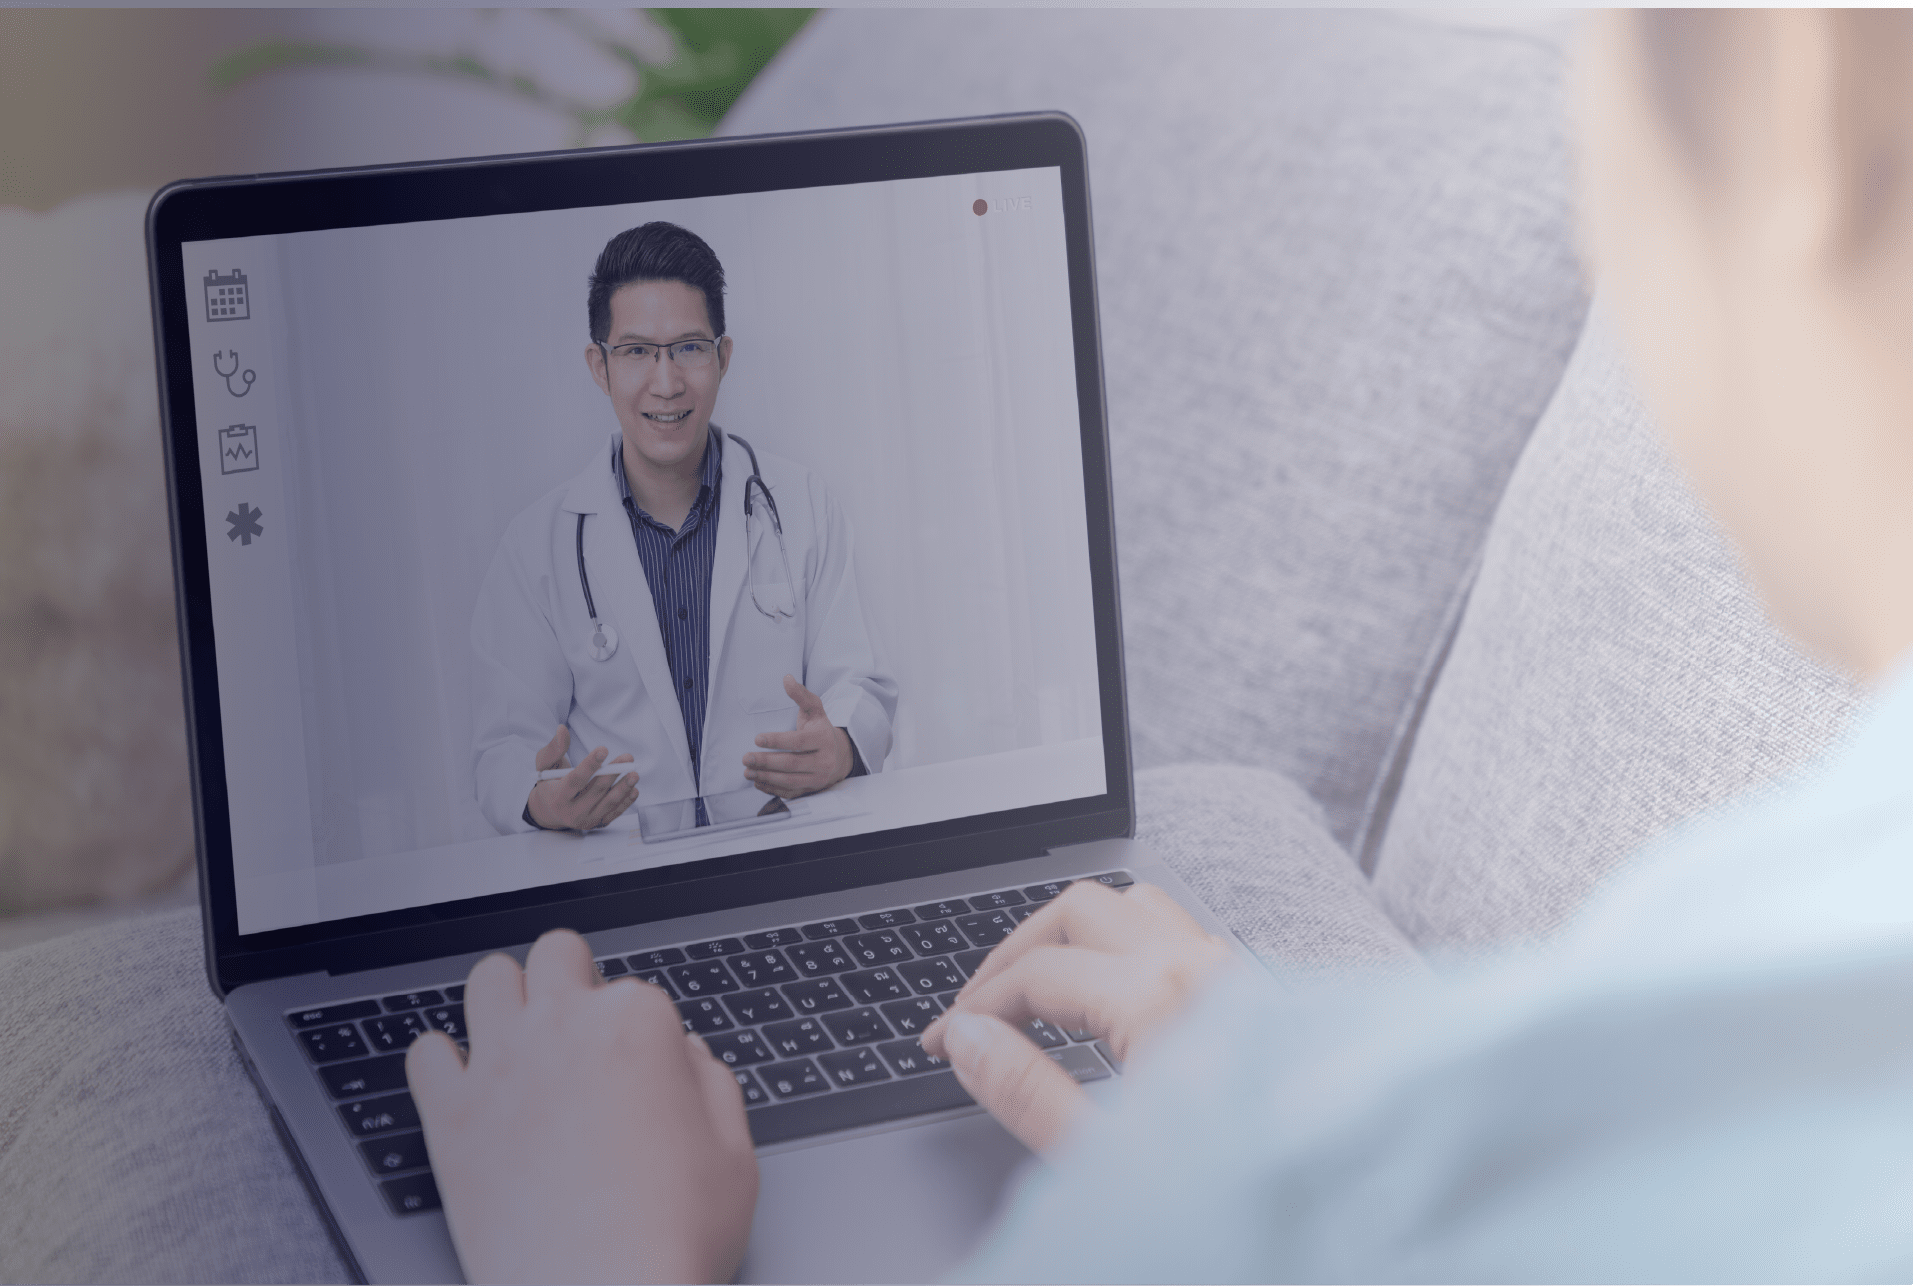 Asian male doctor on the laptop with active service vet during Telemedica telemedicine telehealth appointment to write nexus letters for veteran